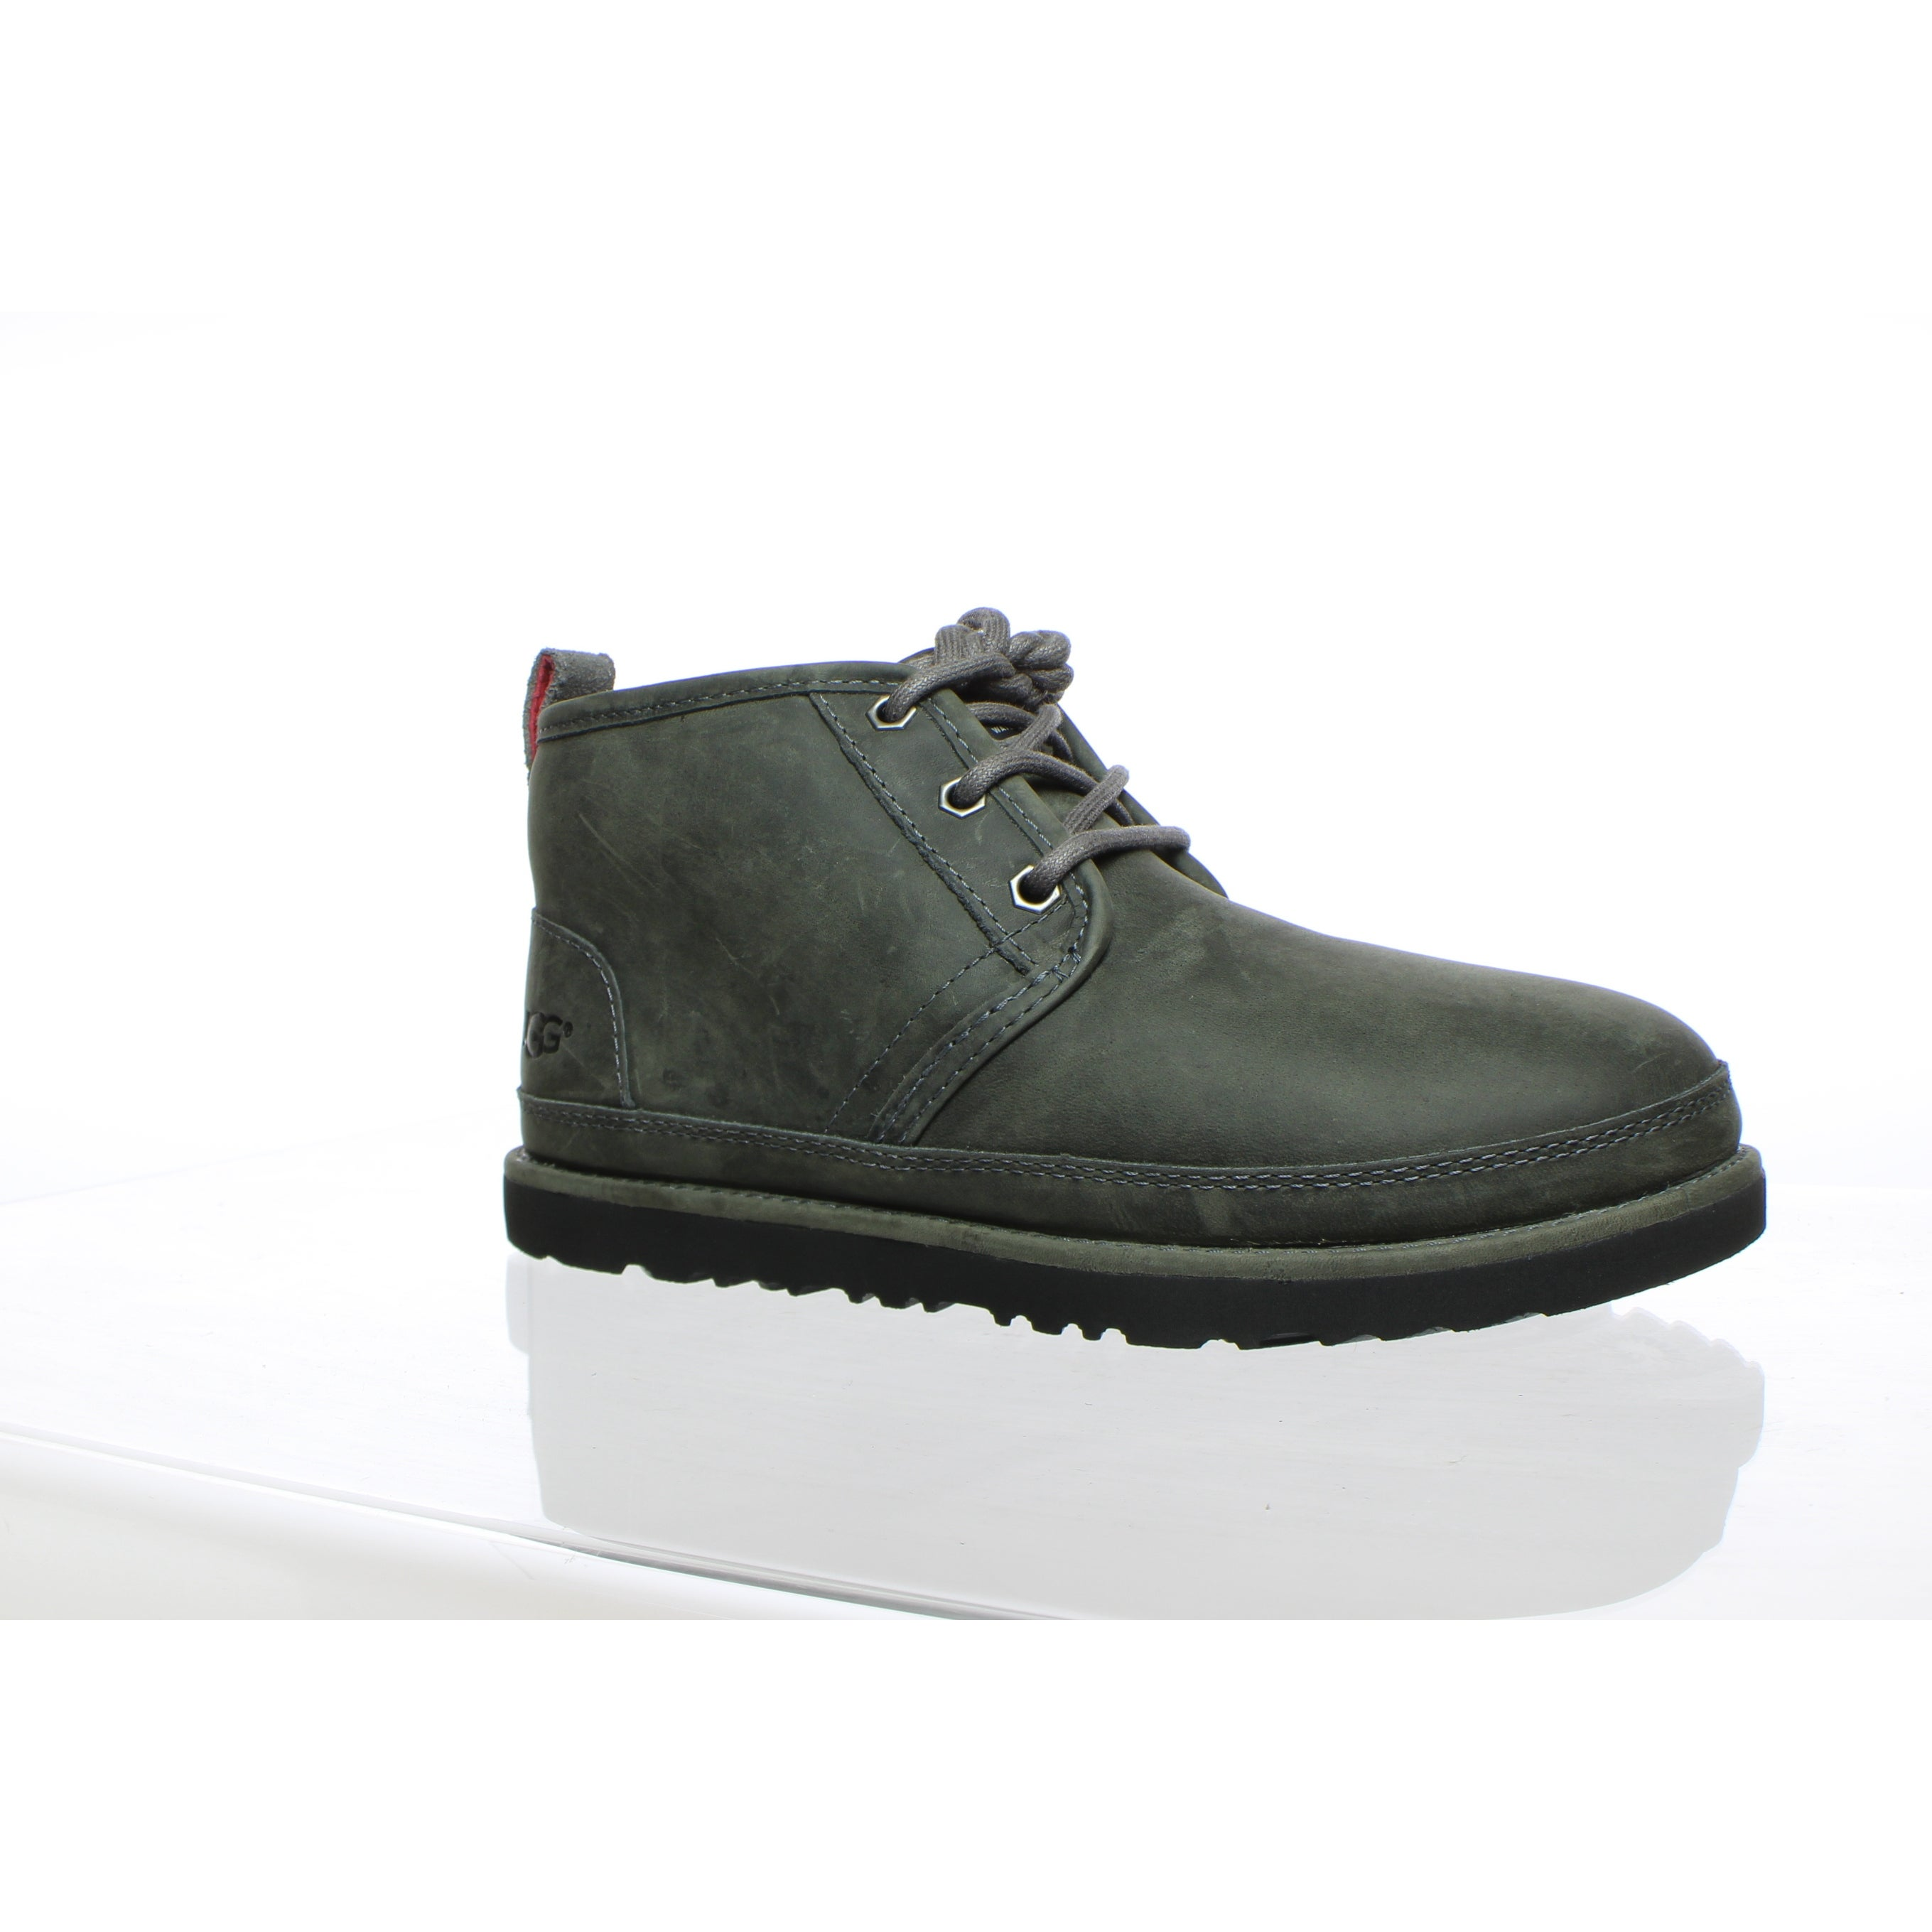 25f1fe40364 UGG Men's Shoes | Find Great Shoes Deals Shopping at Overstock